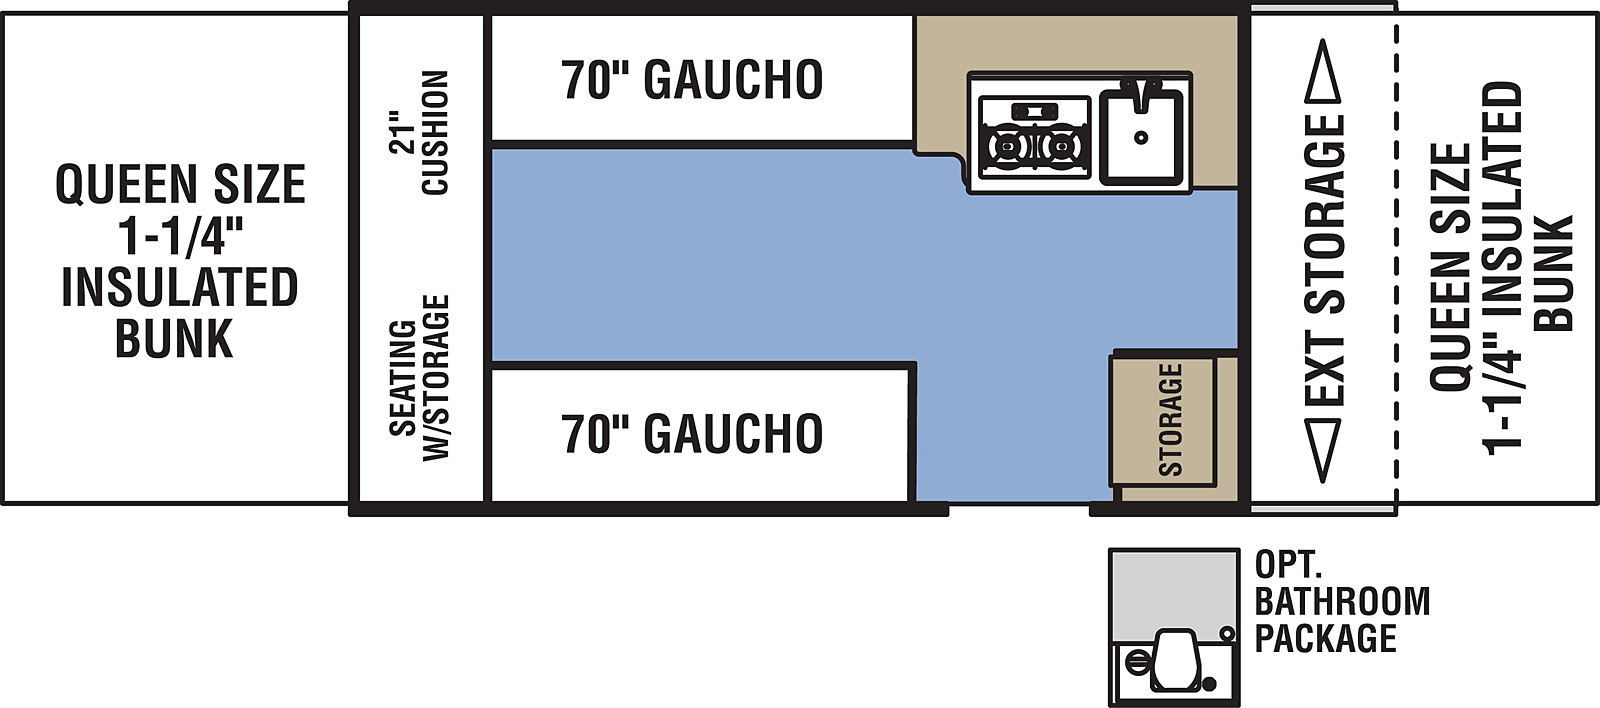 Clipper 128LS floorplan. The 128LS has no slide outs and one entry door.